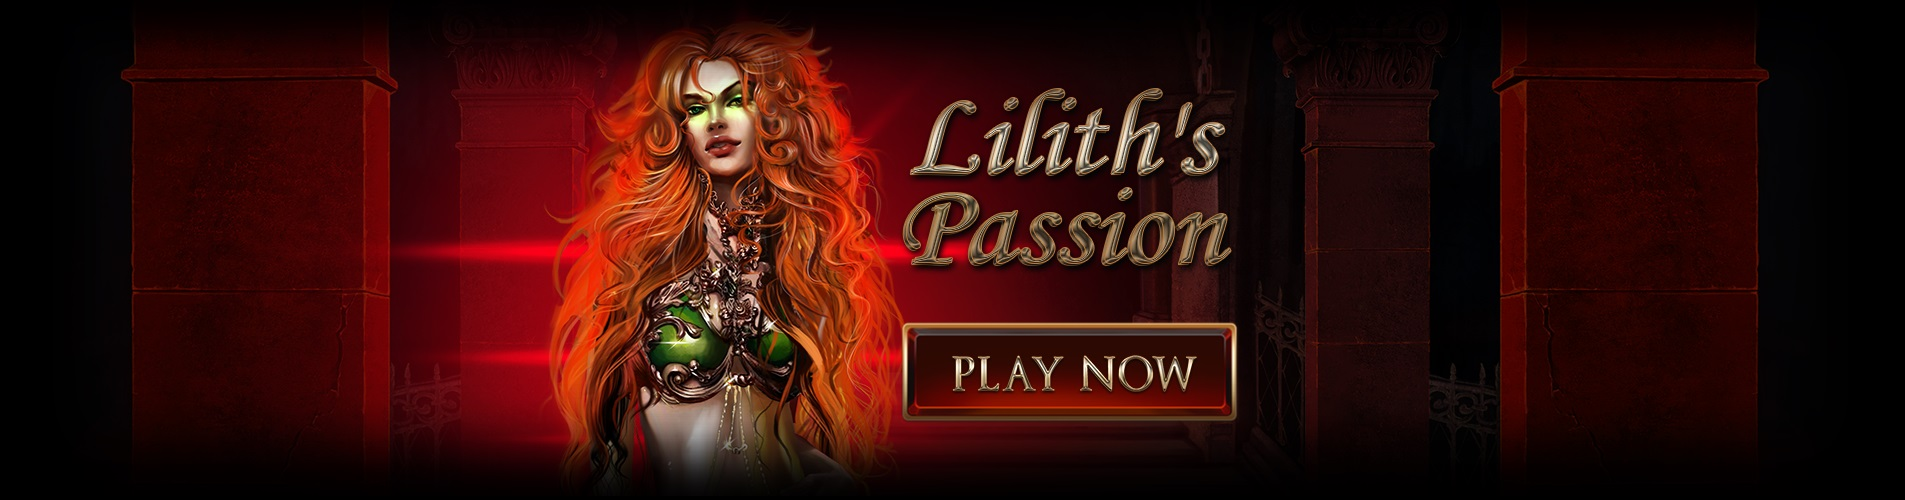 Lilith Passion